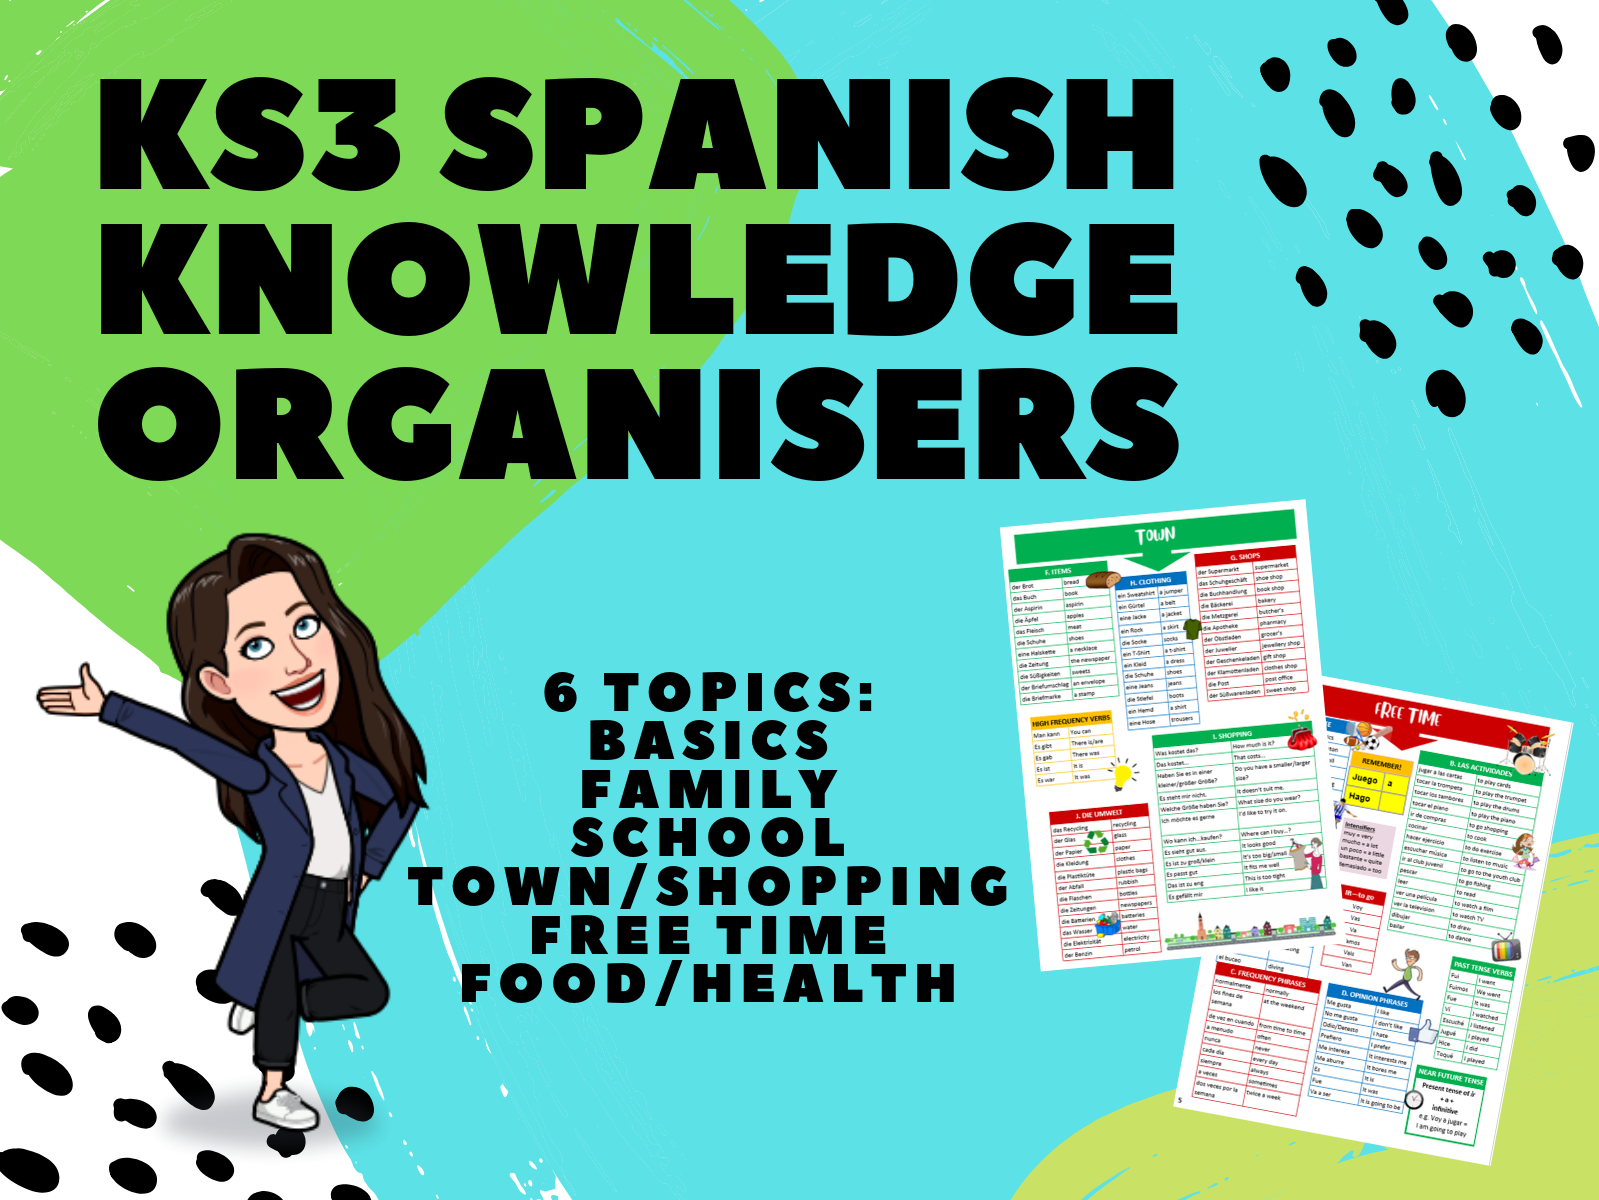 KS3 Spanish Knowledge Organisers 6-Topic Bundle